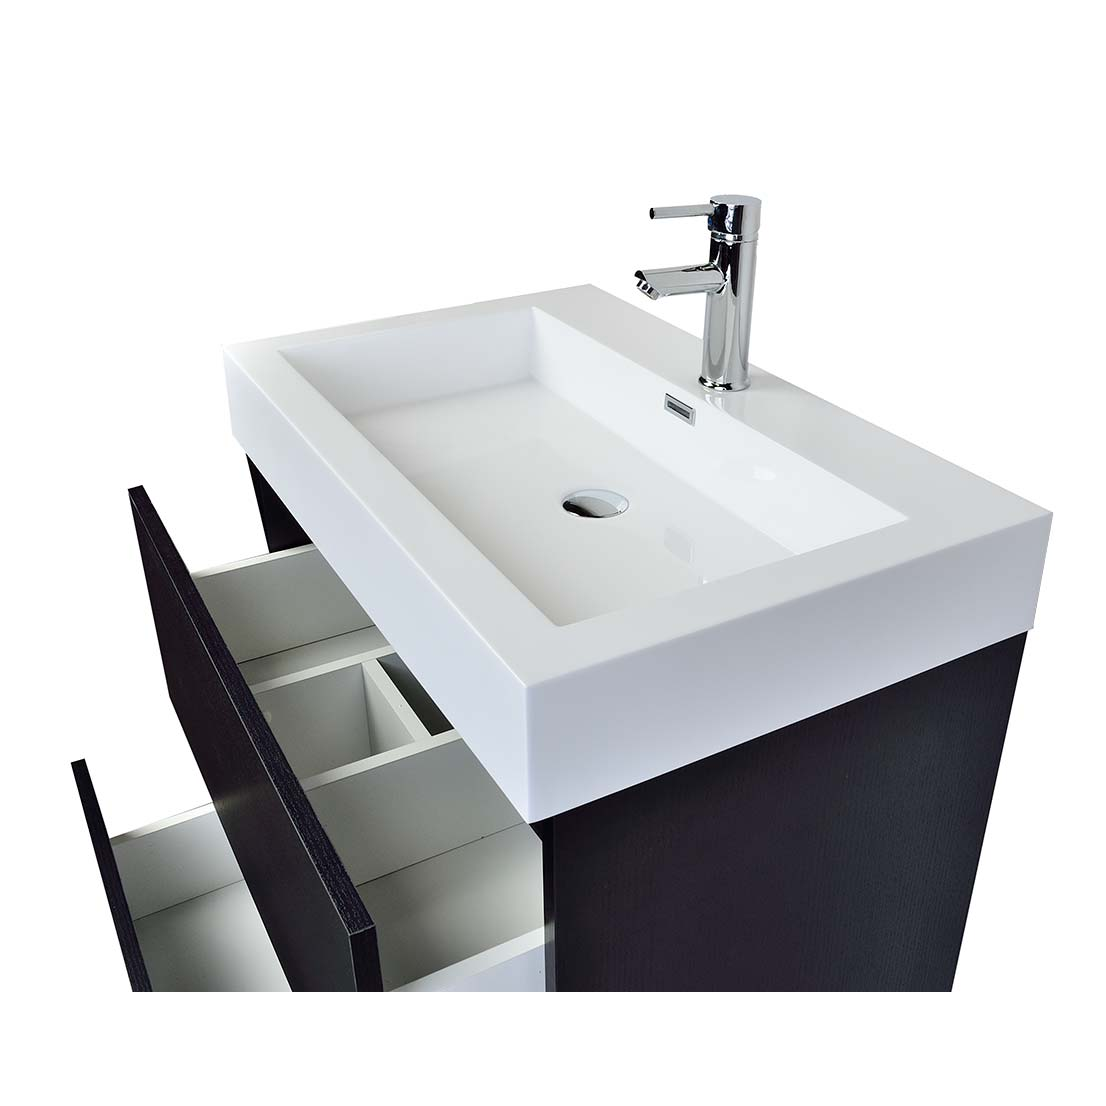 29 5 contemporary bathroom vanity black tn ly750 bk for Restroom vanity